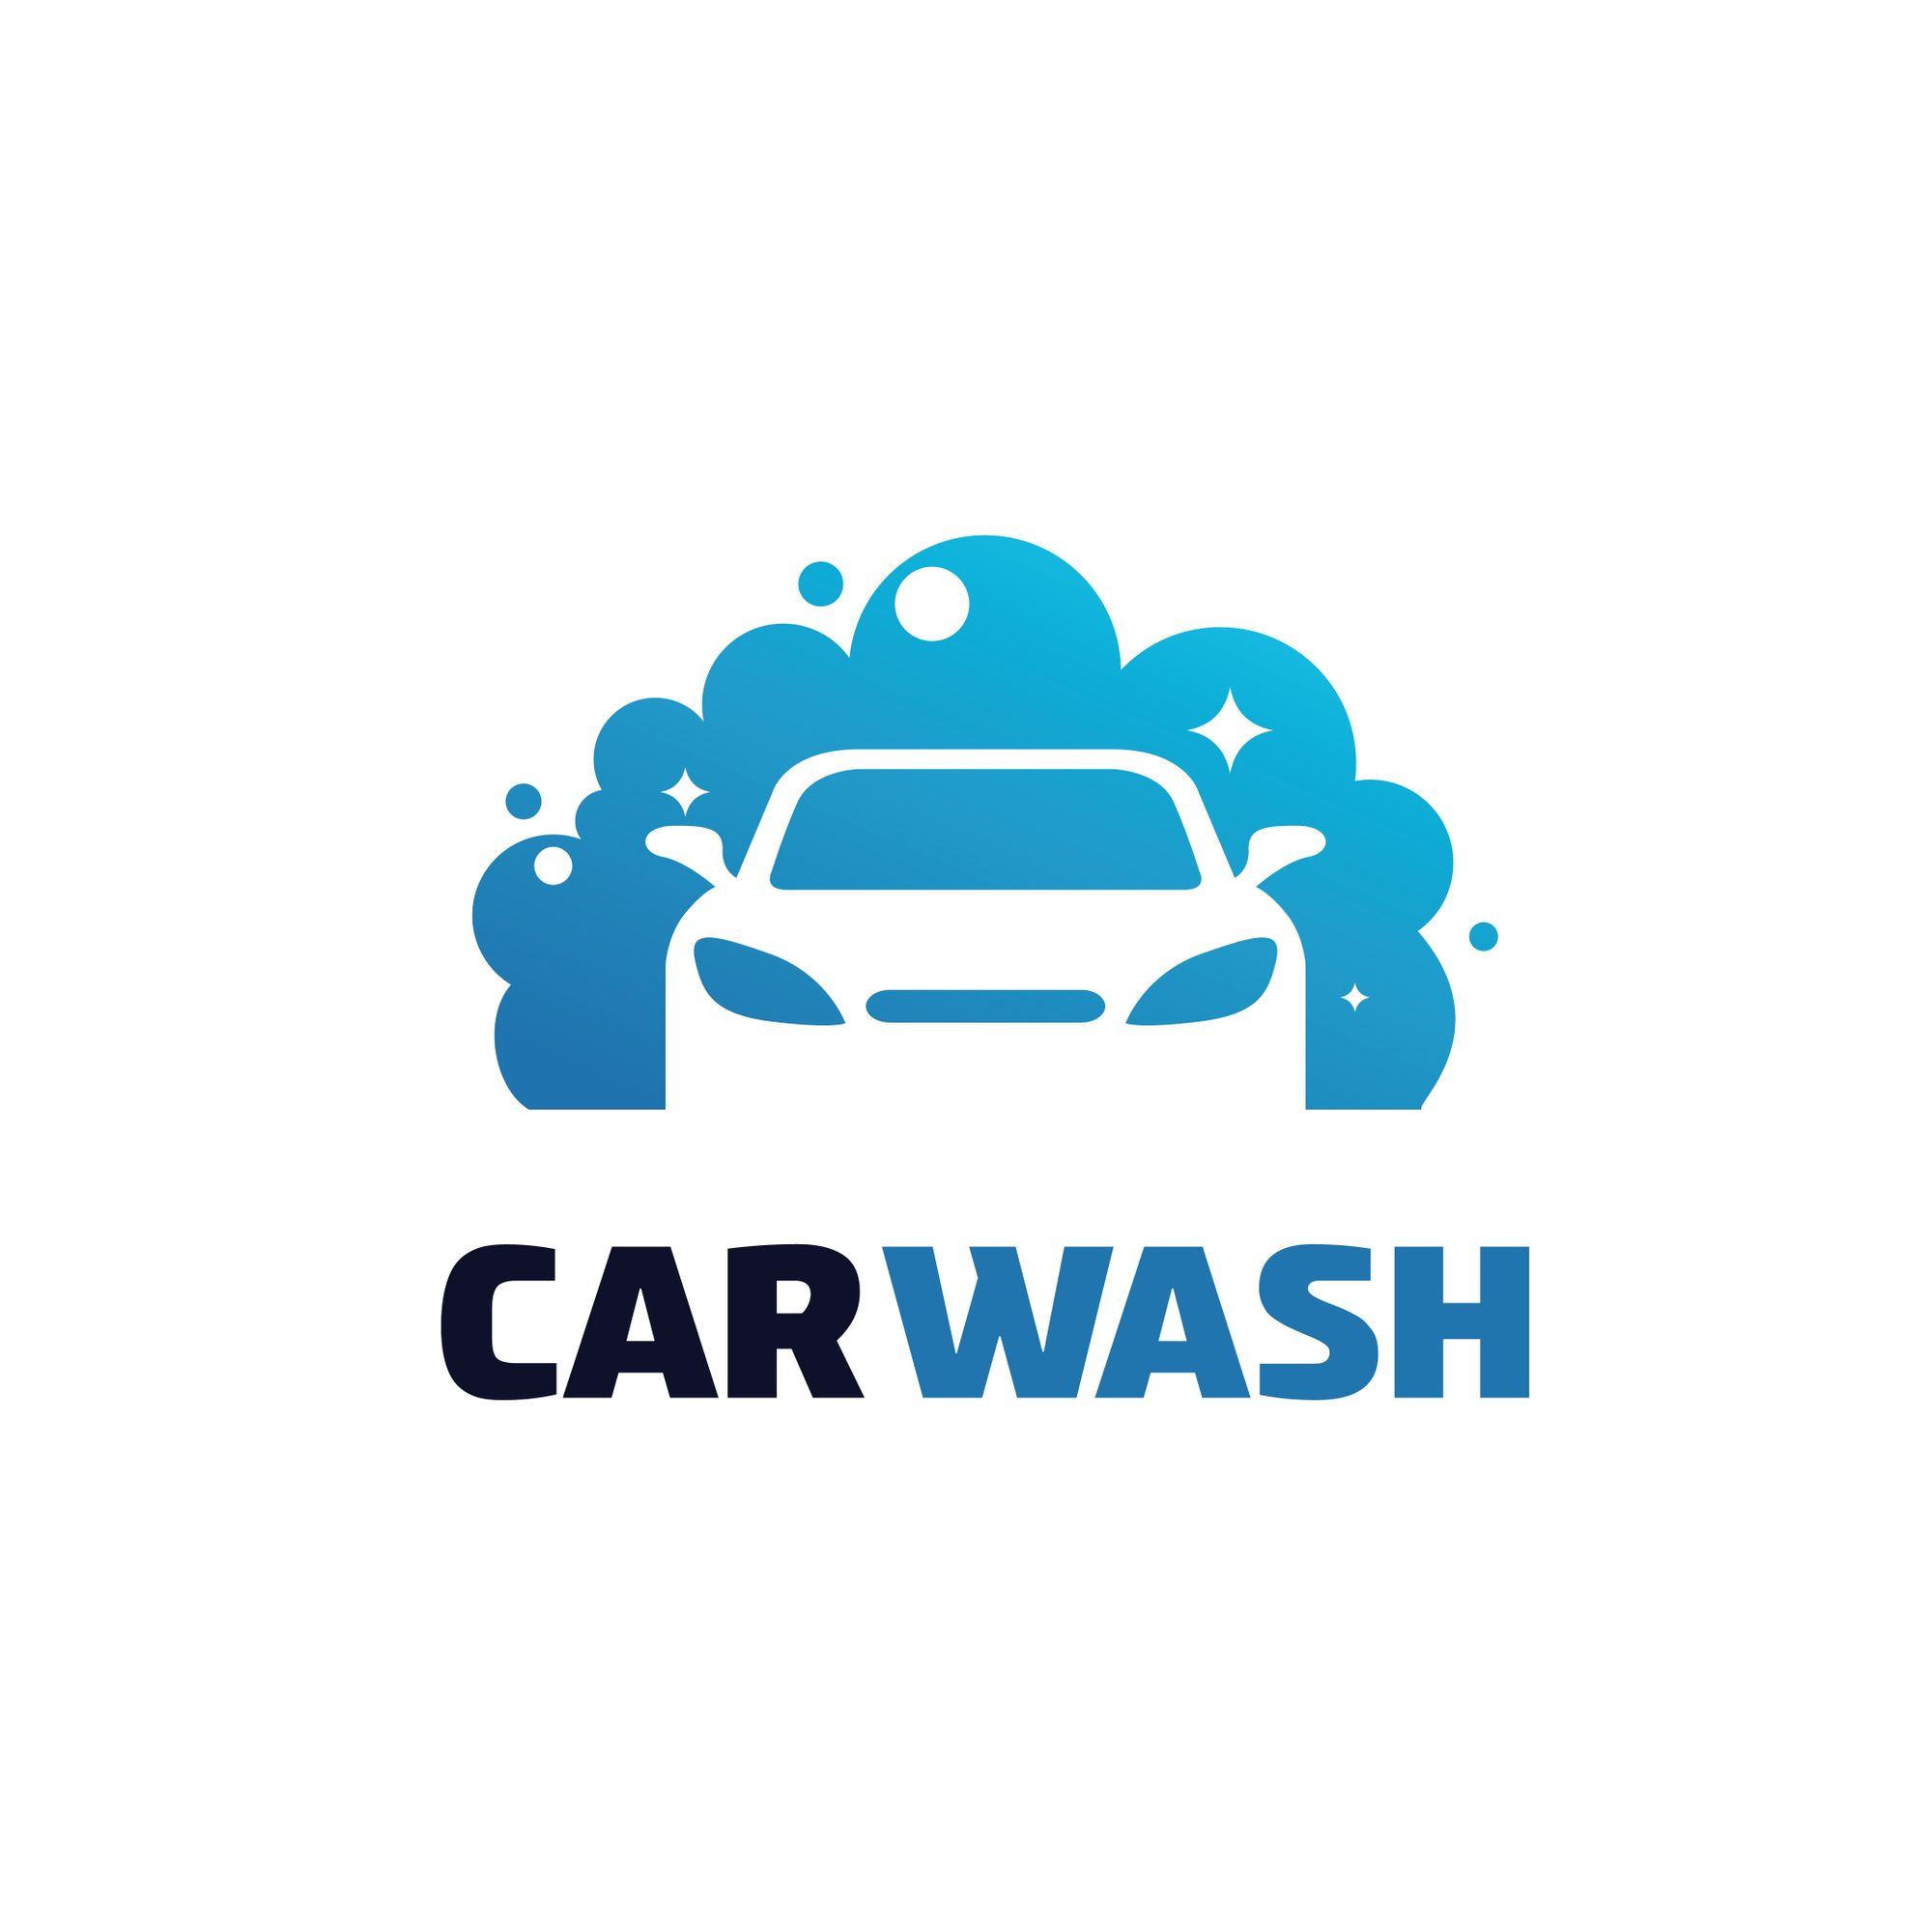 How to start a car-wash & bike-wash business? Here are 9 steps you should follow